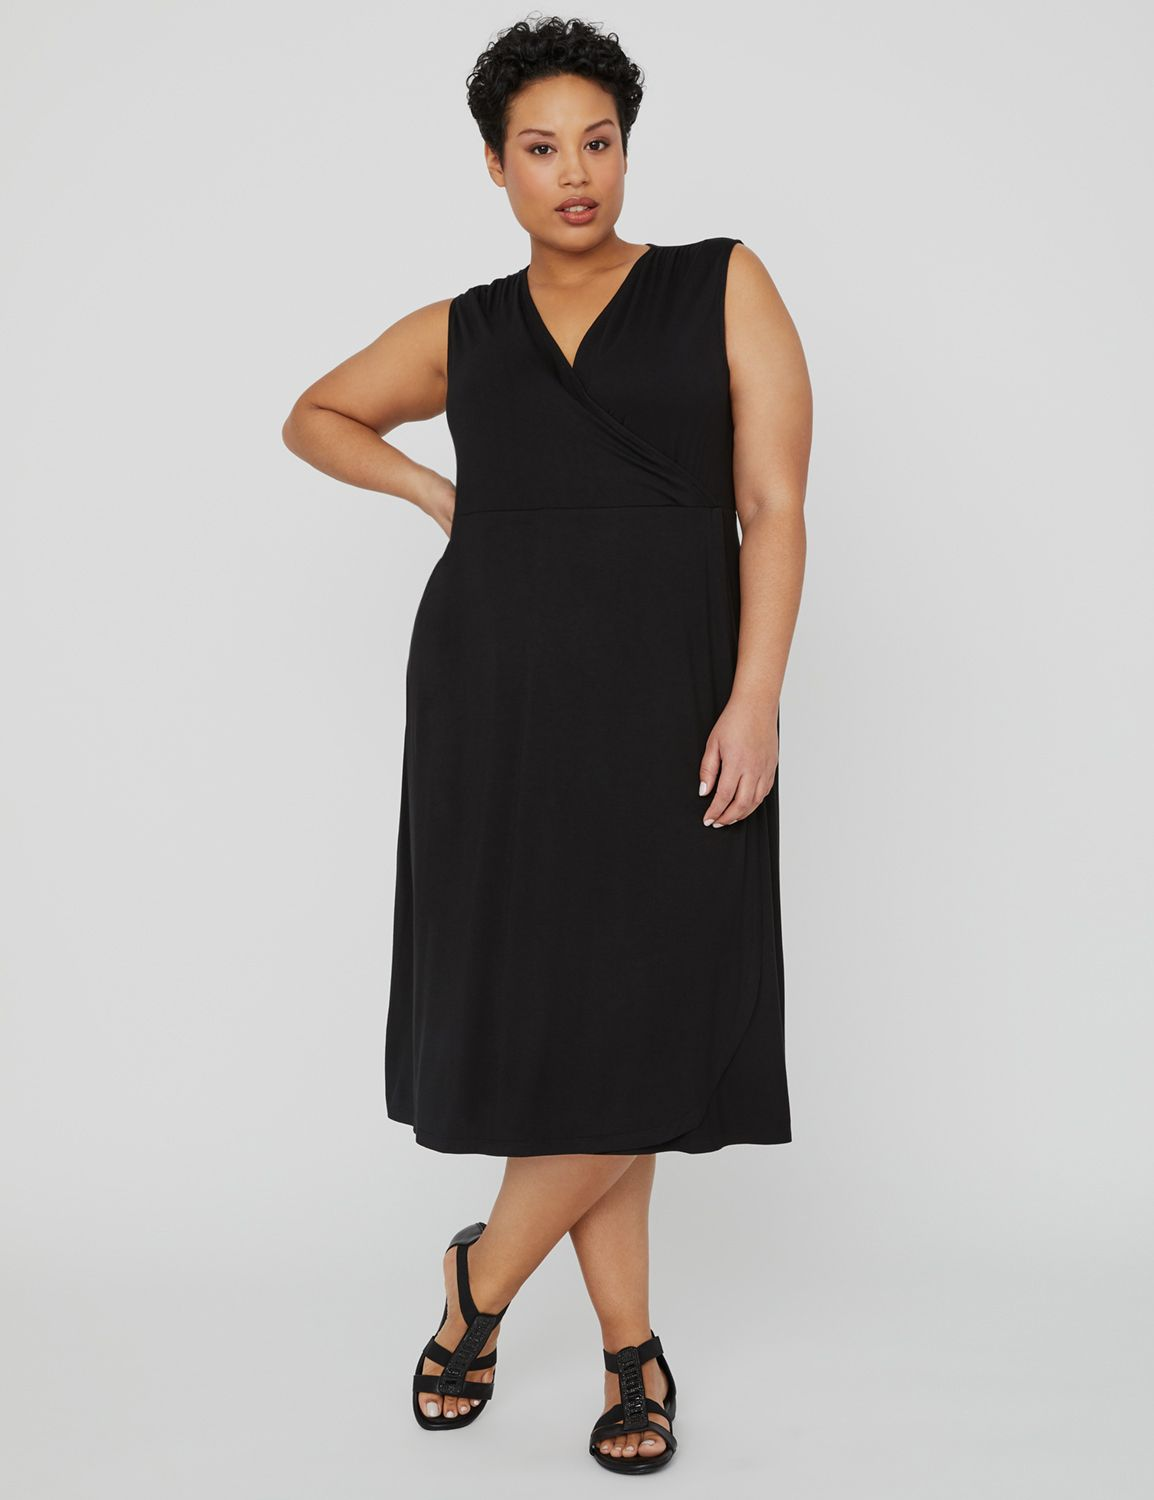 Riverview Wrap Dress 1088151 Vneck Front and Back Maxi E MP-300102362